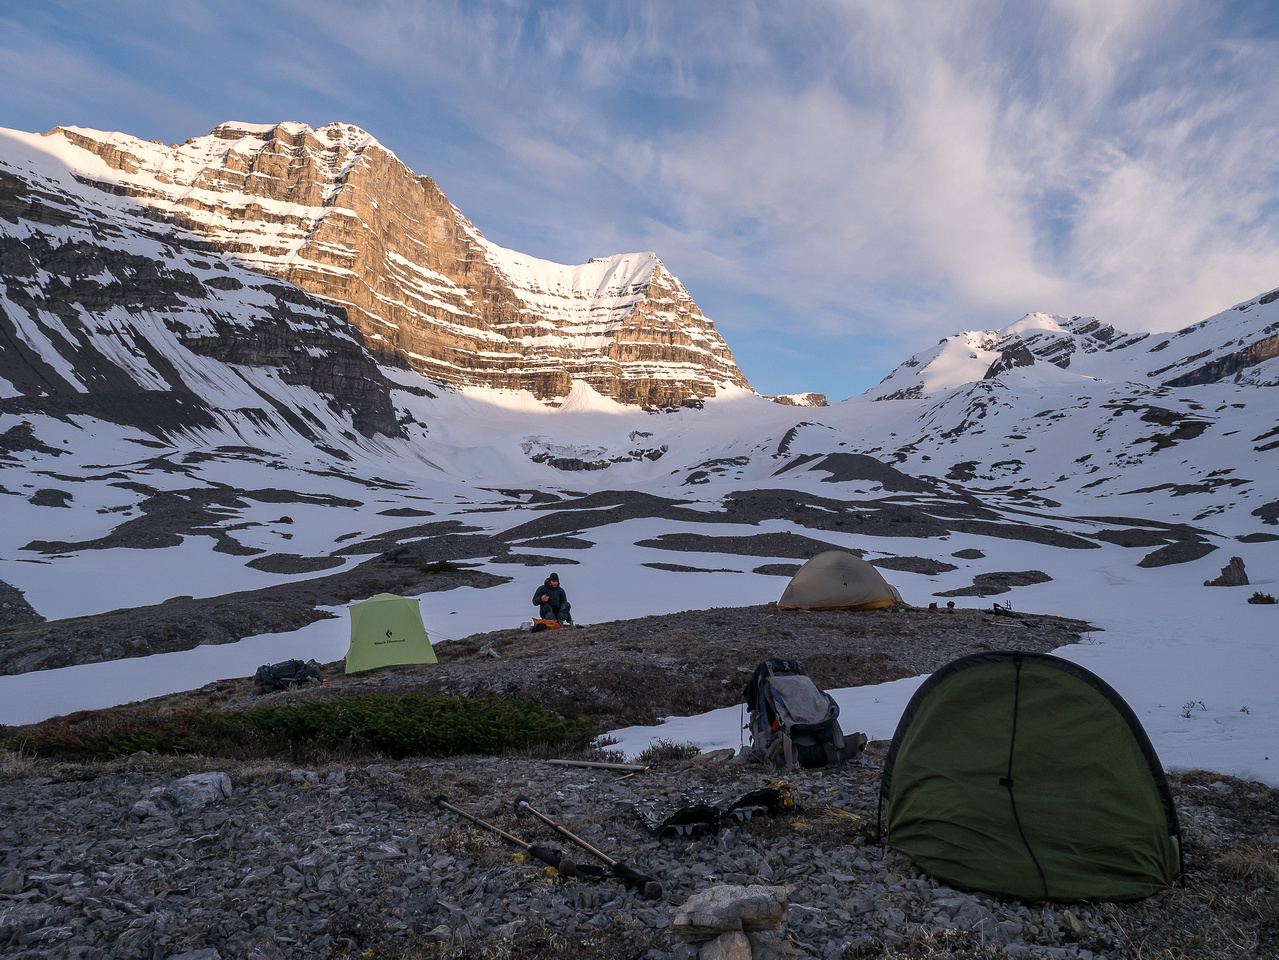 Camp the next day - feels good to be done already! Cirrus in the far distance at right.